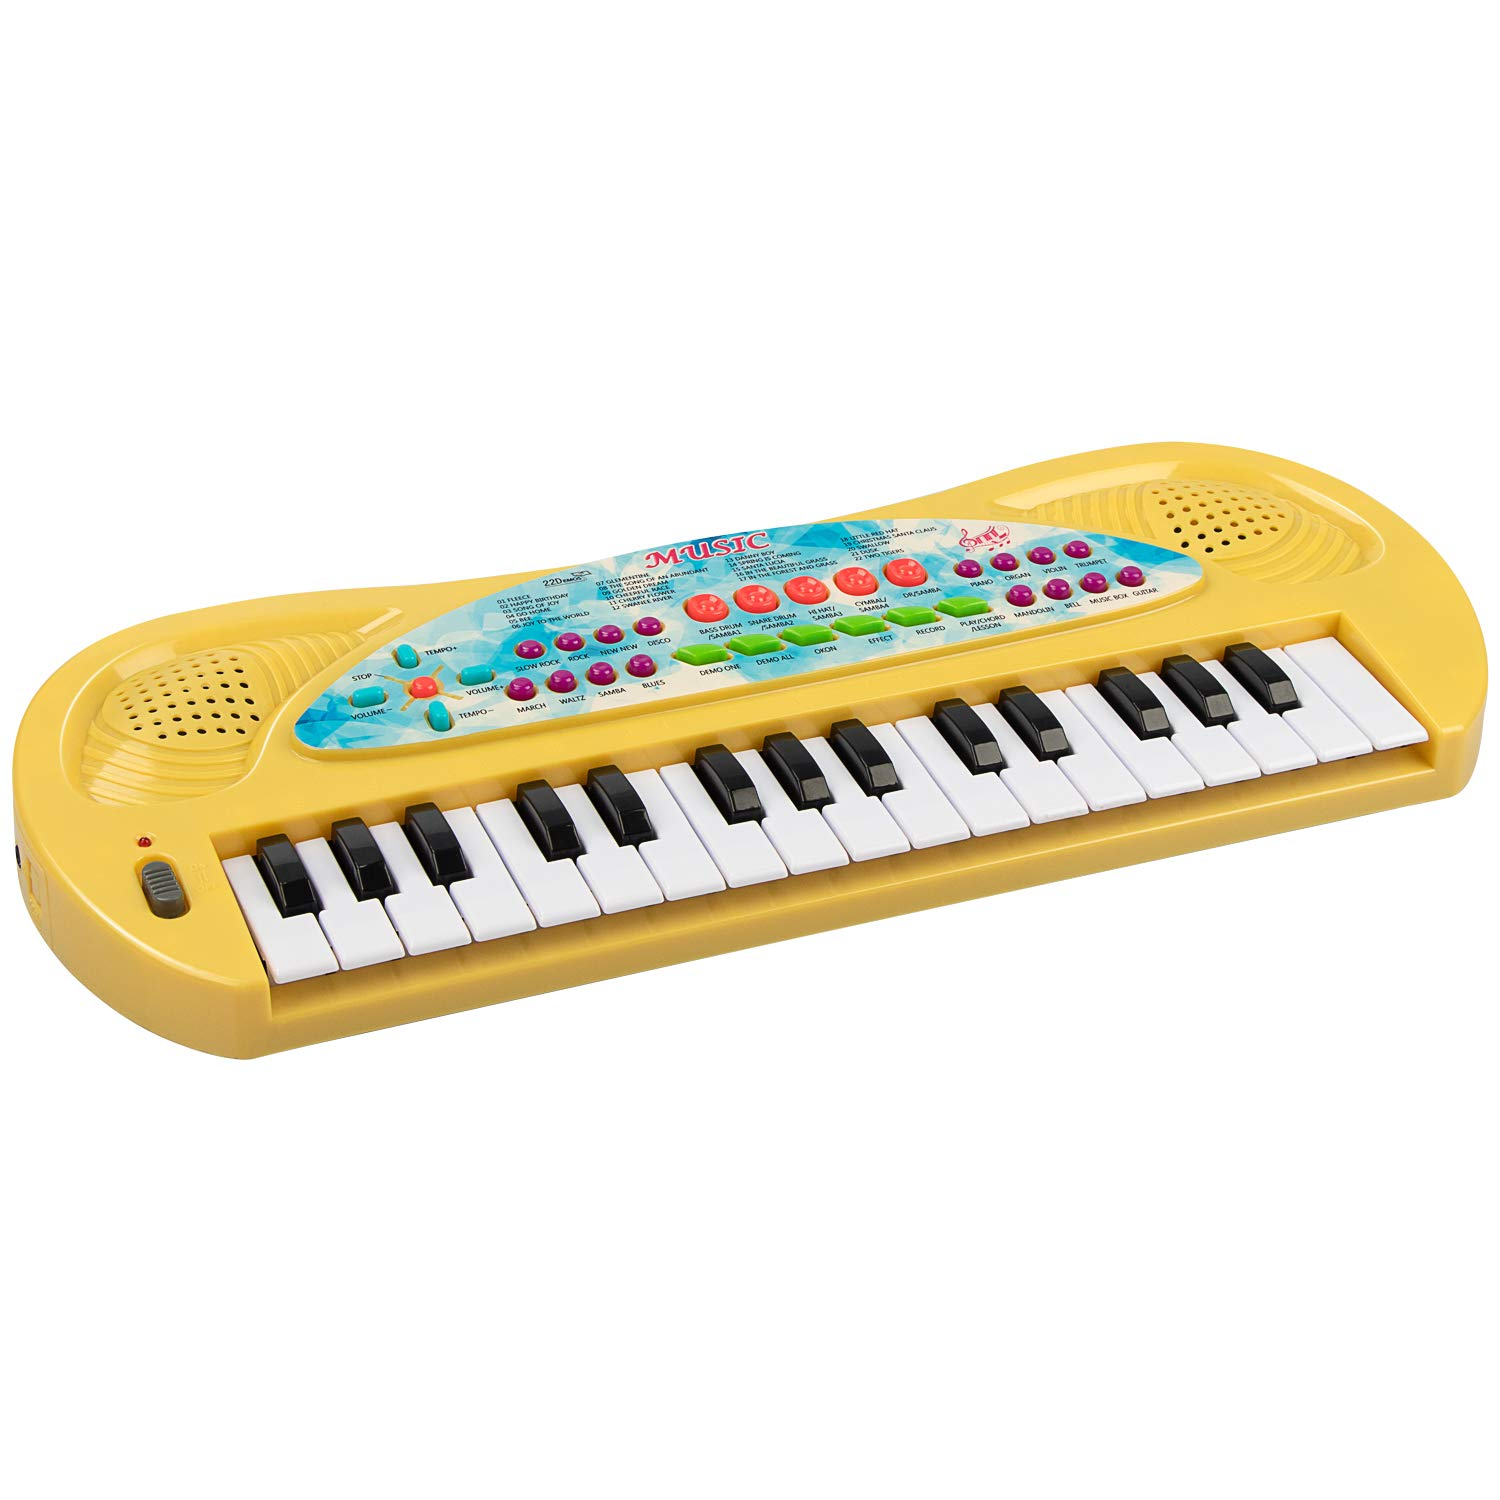 aPerfectLife Piano for Kids, 32 Keys Multifunction Portable Electronic Kids Keyboard Piano Musical Children Boys Girls Early Learning Educational Toy (Yellow)